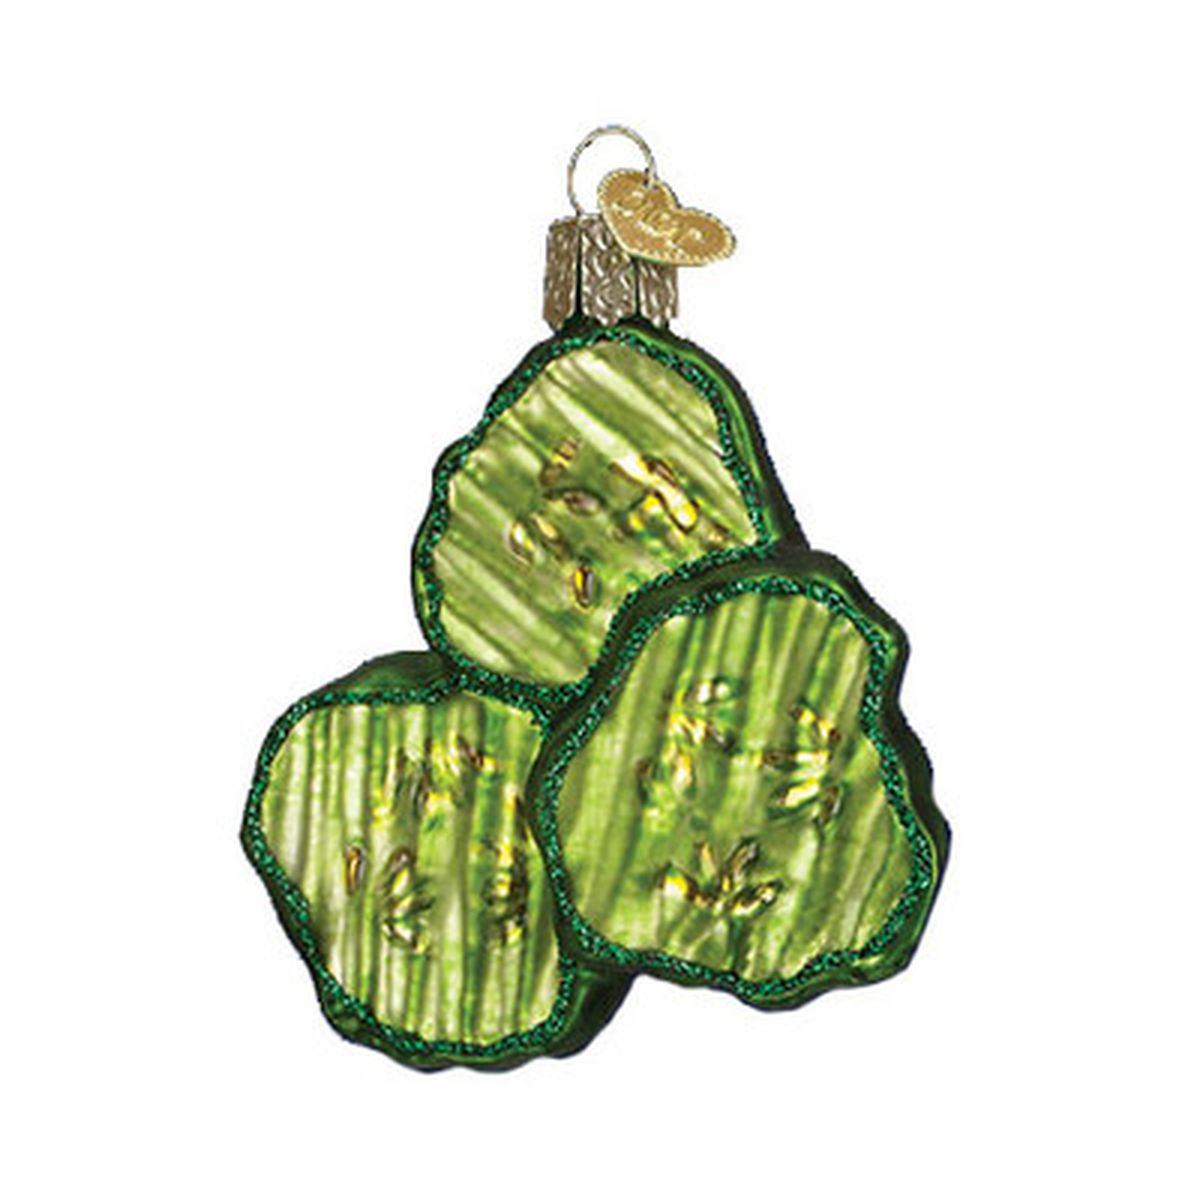 Christmas Tree Pickle Tradition: Food-Themed Christmas Ornaments Have Zero Calories And